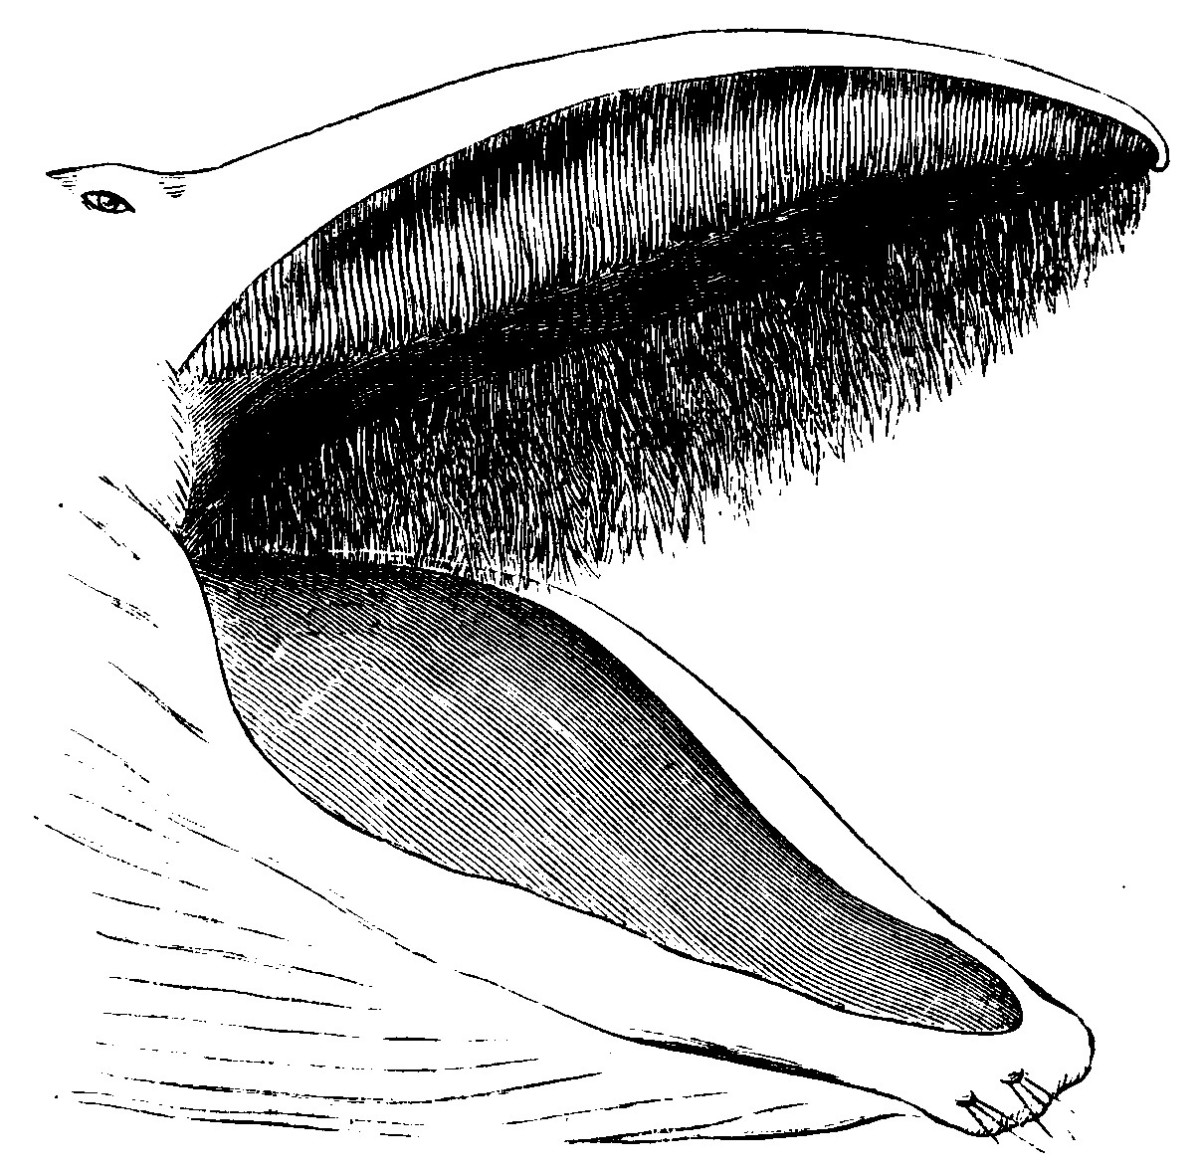 The arrangement of the baleen